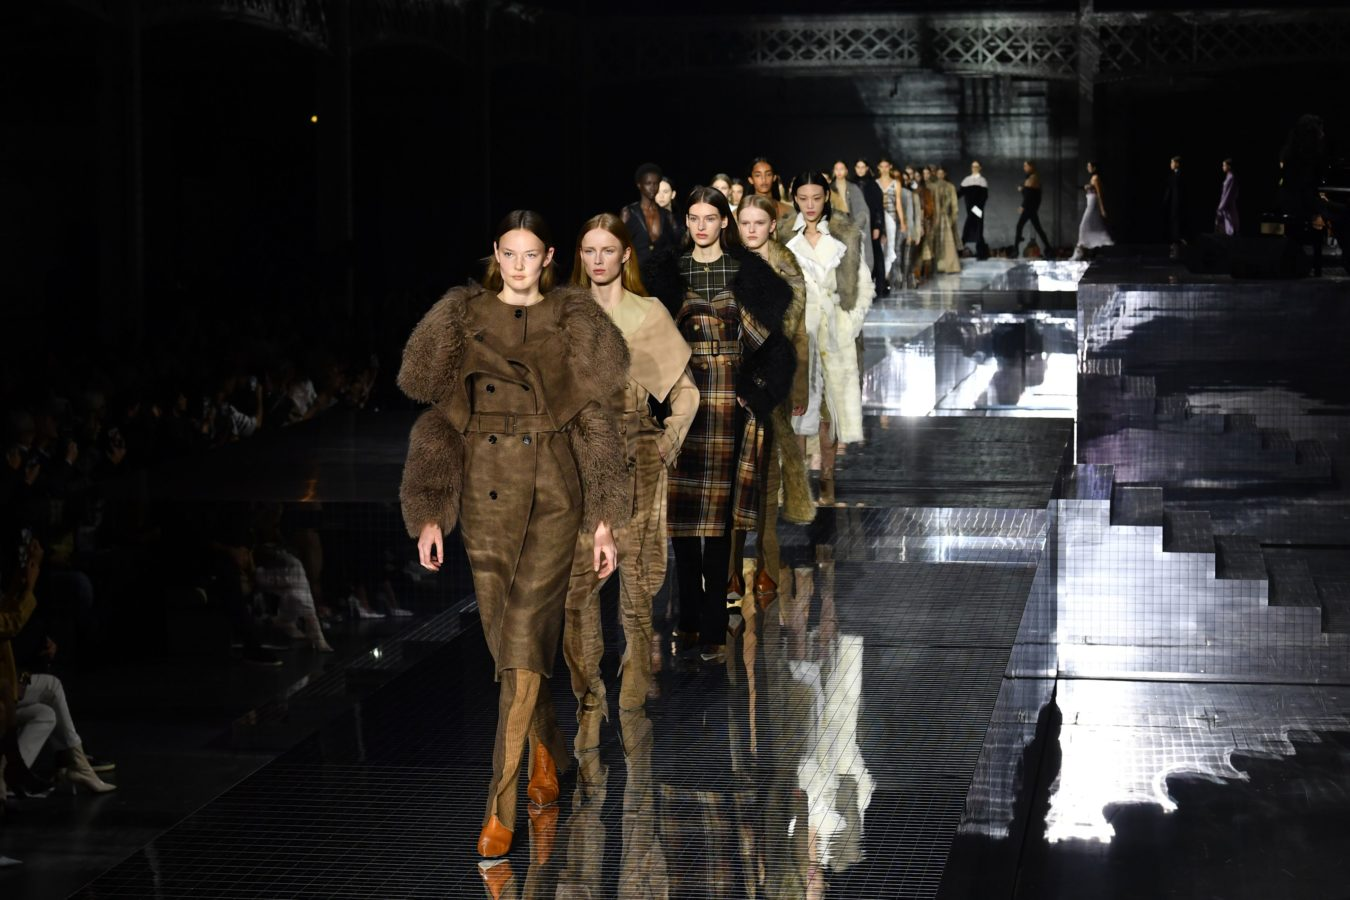 Burberry's next fashion show will be carbon neutral and pay homage to the British landscape